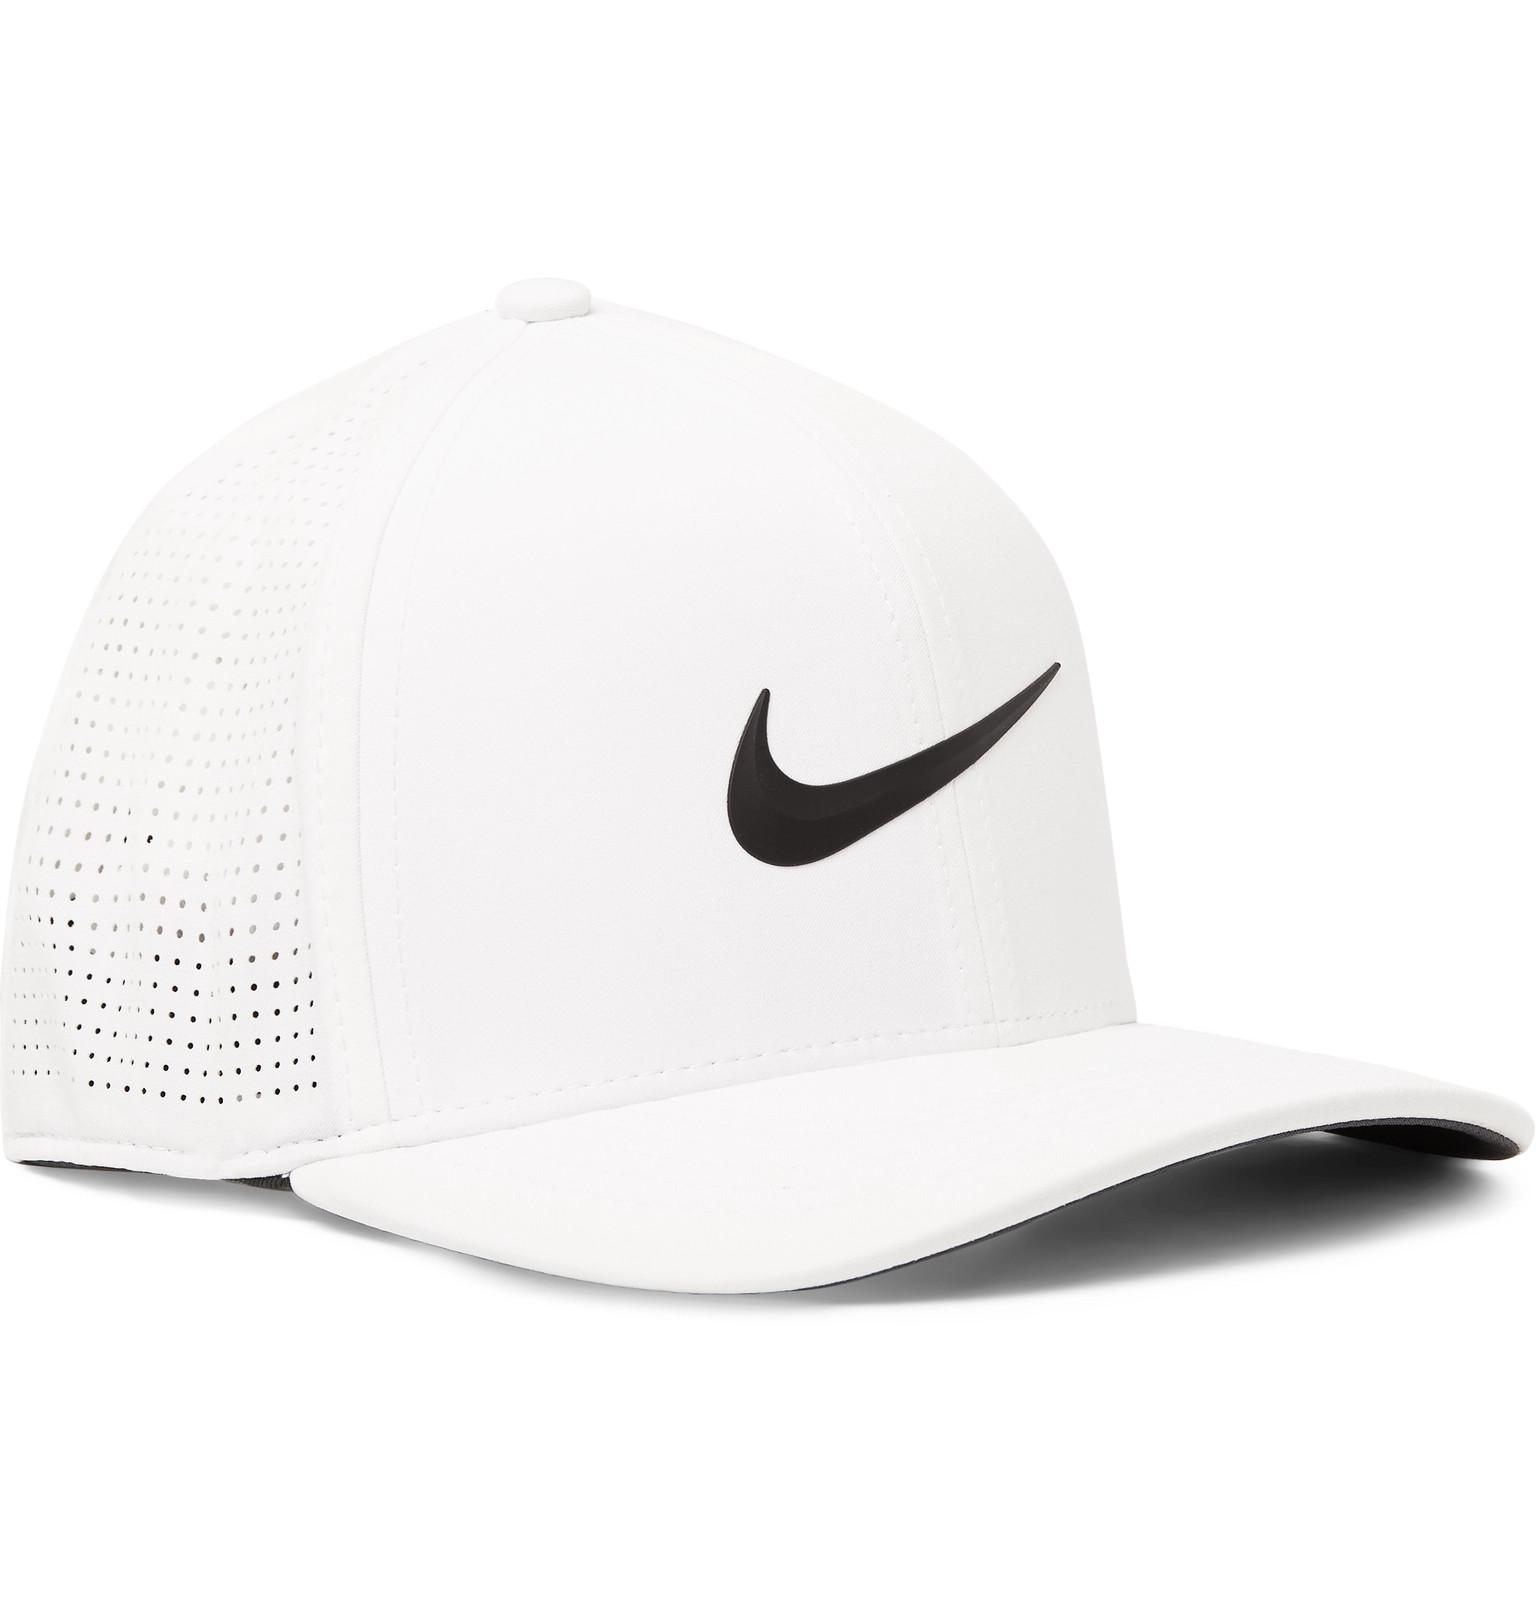 3f0ae00e Nike Aerobill Classic 99 Perforated Dri-fit Golf Cap in White for ...